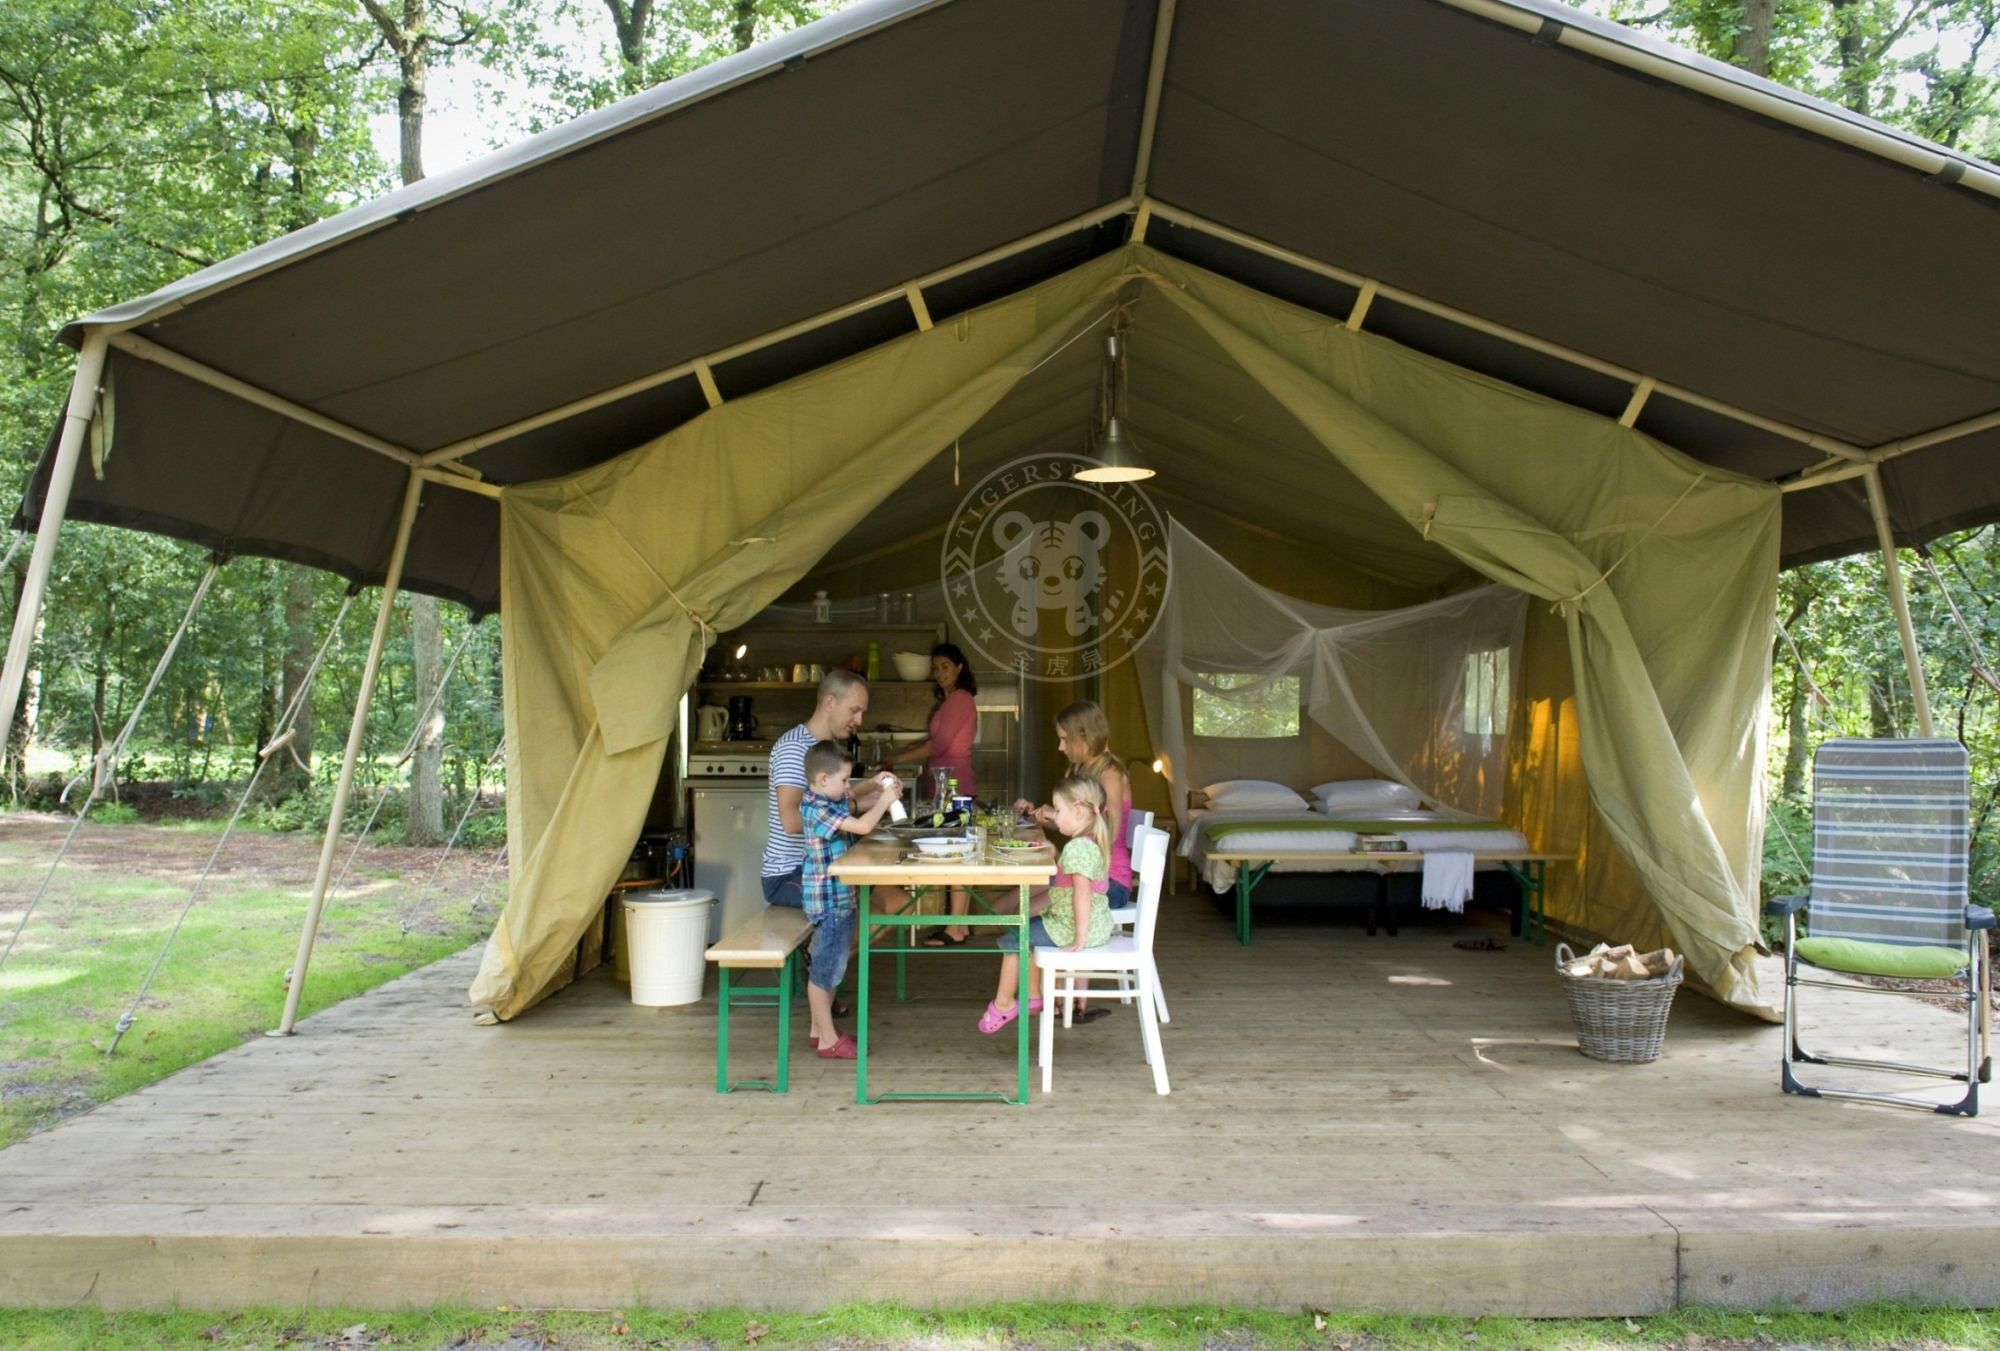 For the serious c&er who wants to put up a semi-permanent tent Safari Tents work well on decking platforms or just on the ground. & canvas safari tent safari tent for sale